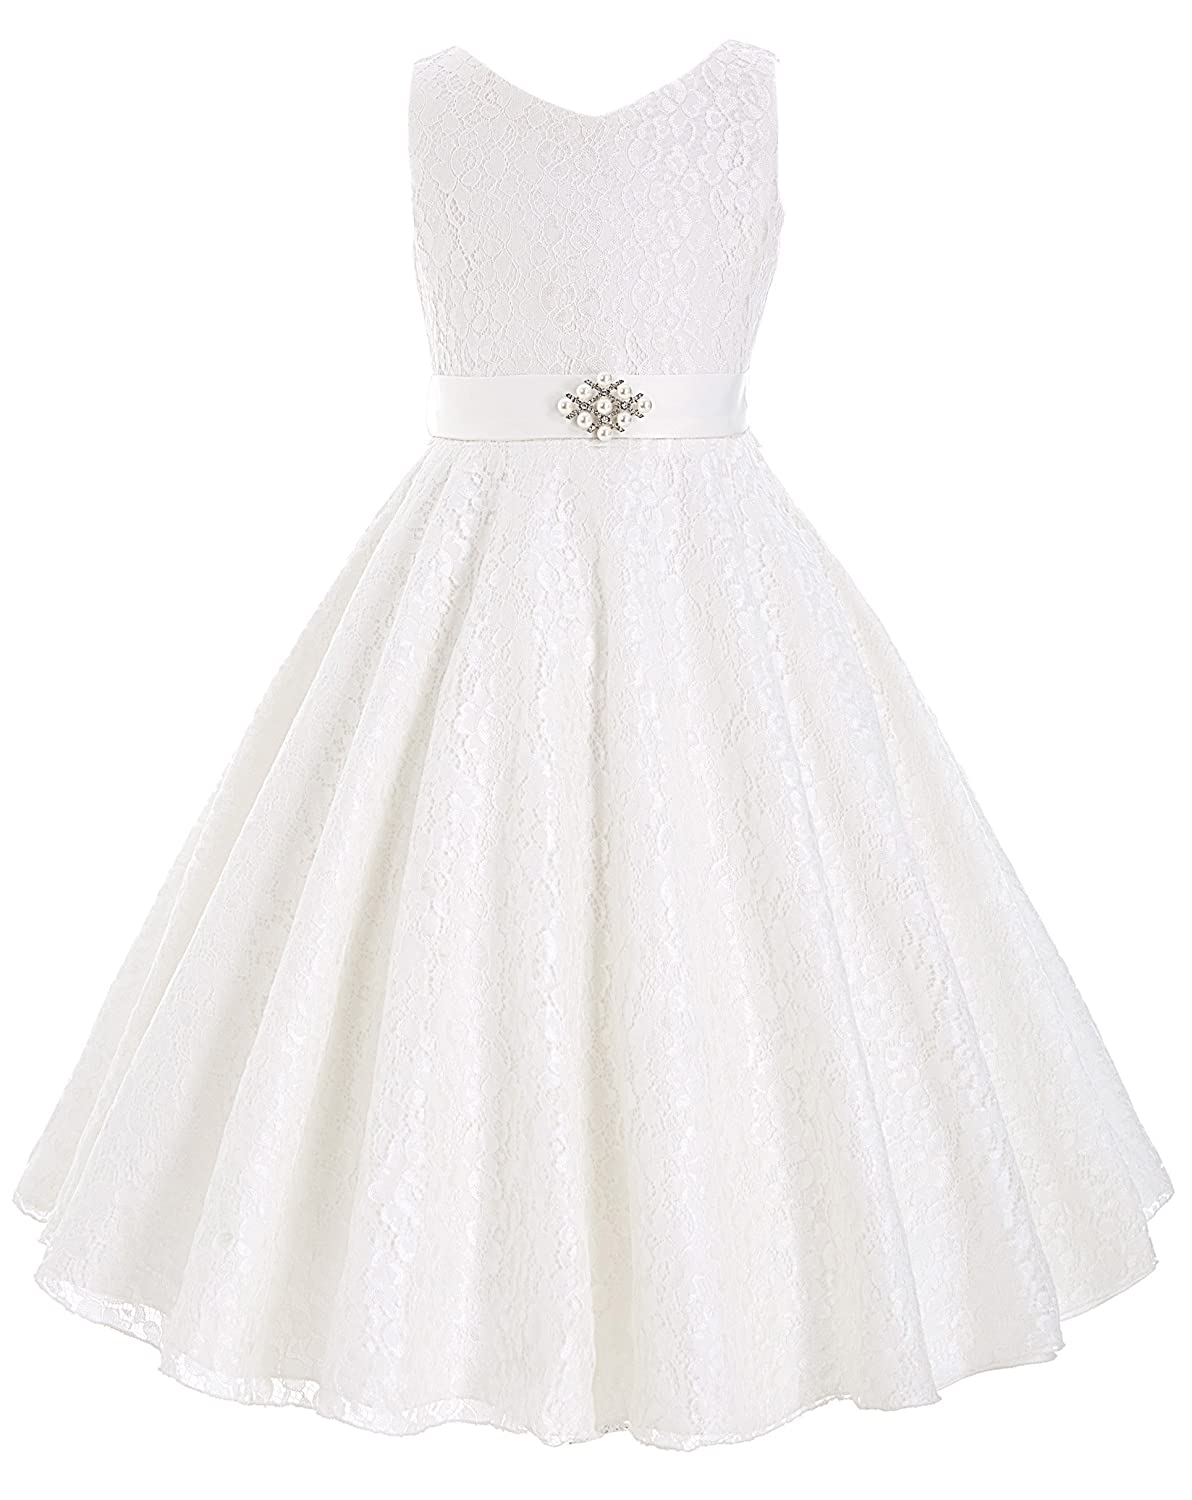 Vintage Style Children's Clothing: Girls, Boys, Baby, Toddler GRACE KARIN Lace Flower Girl Dress V Neck Girls Pageant Wedding Party Ball Gown $34.29 AT vintagedancer.com